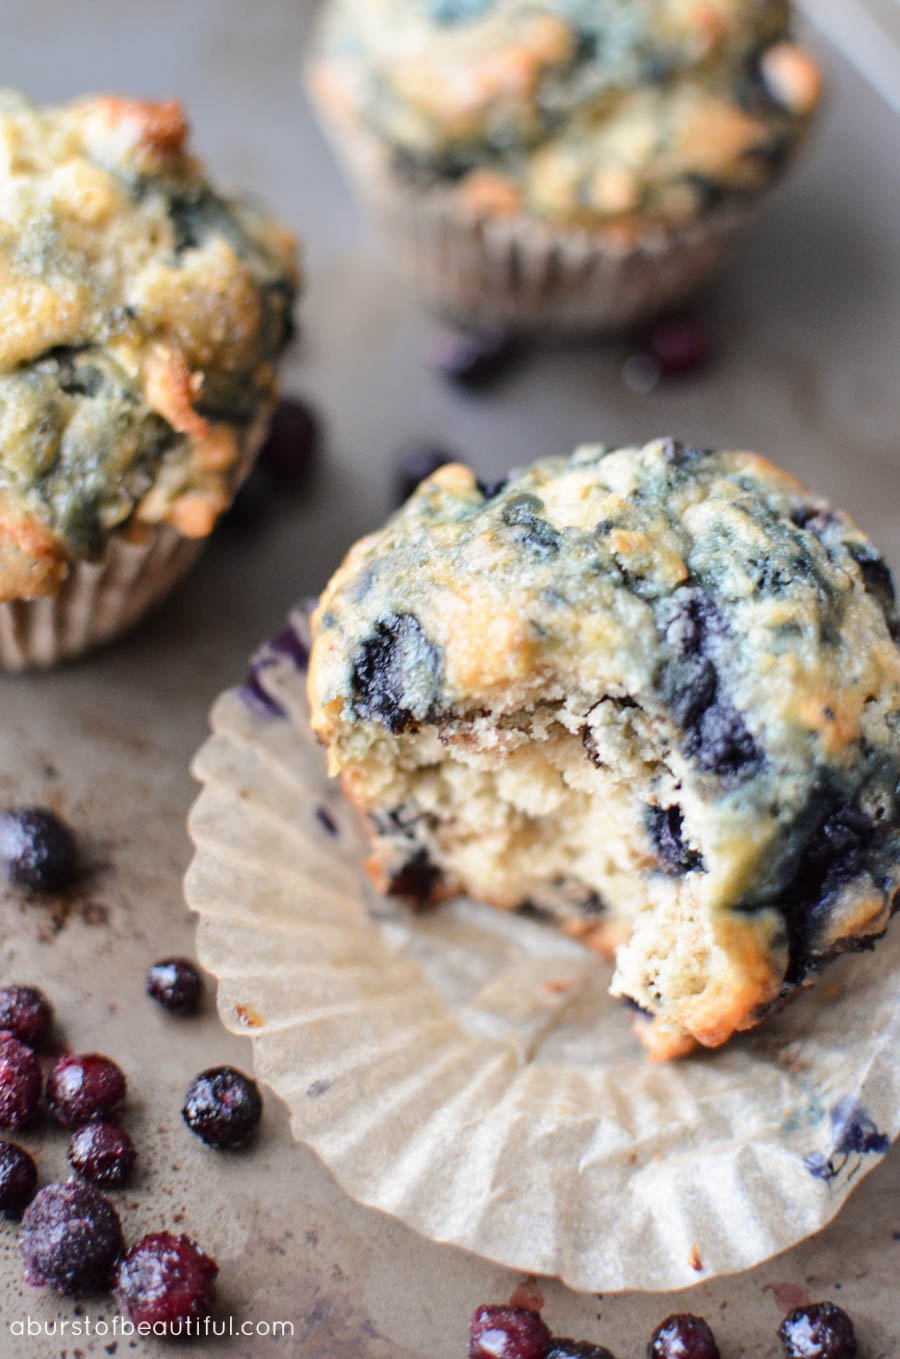 Take a look back at our Top Ten Posts of 2016: The Best Blueberry Muffins